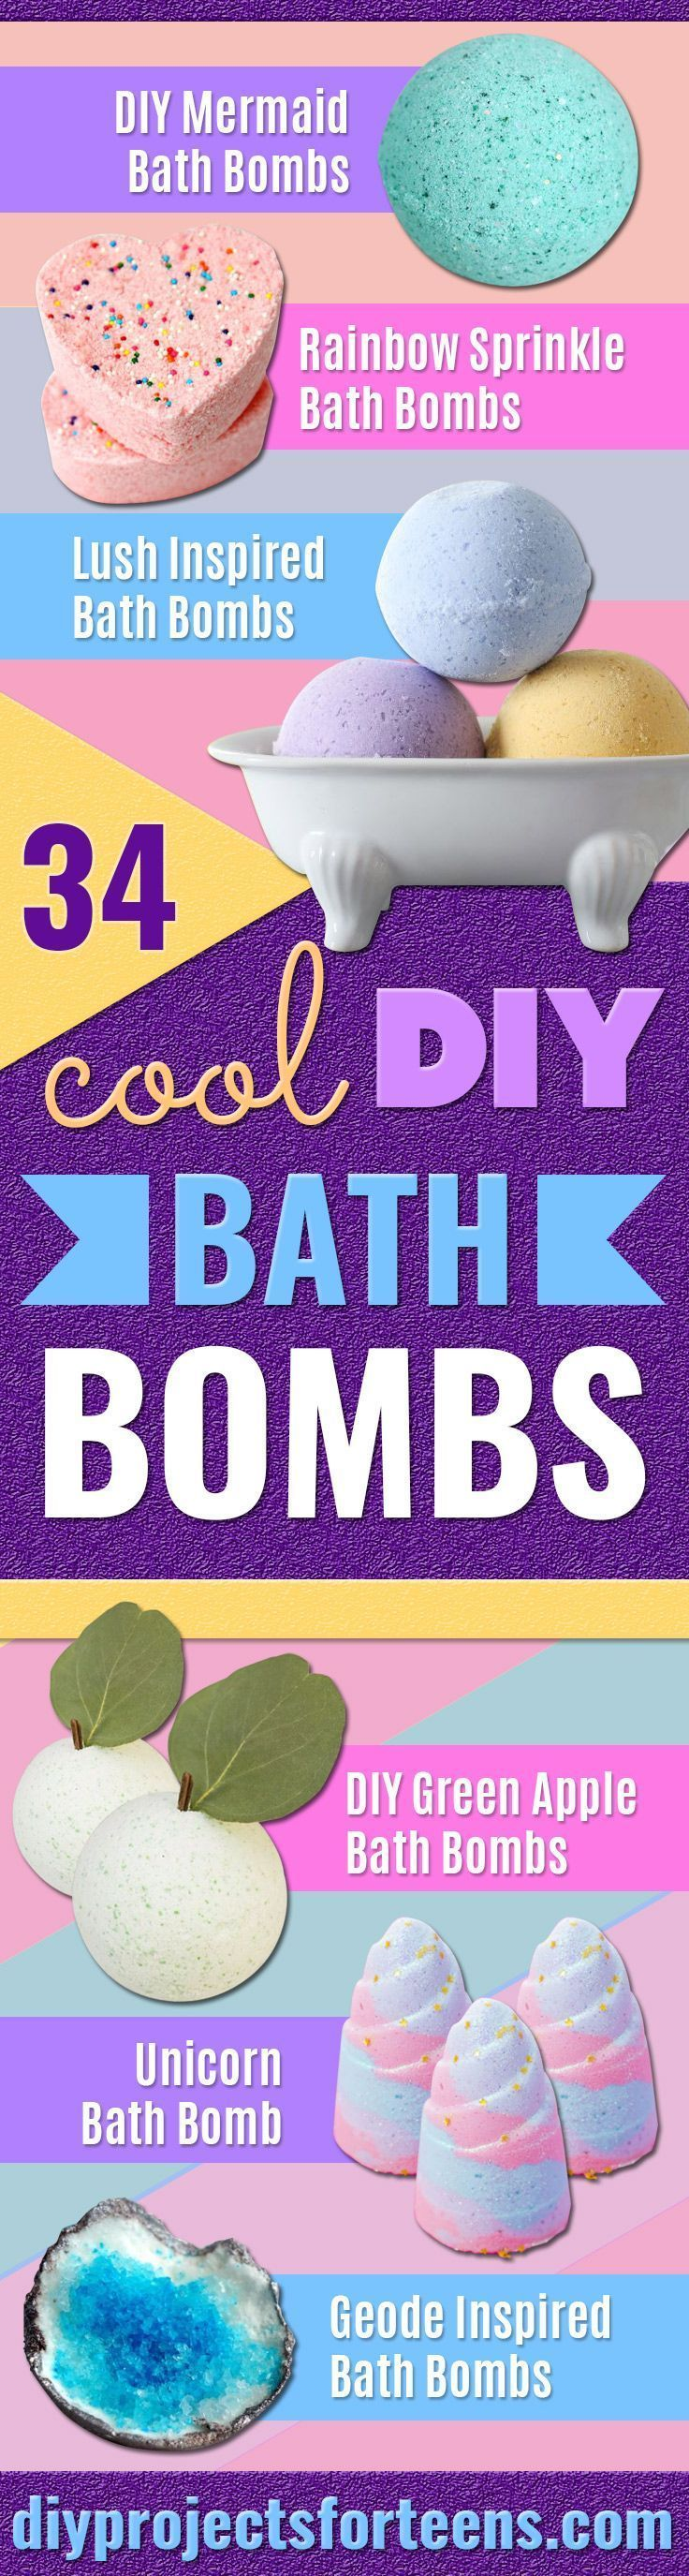 Cool DIY Bath Bombs to Make At Home - Rose Milk Bath Bombs - Recipes and Tutorial for How To Make A Bath Bomb - Best Bathbomb Ideas - Fun DIY Projects for Women, Teens, and Girls | DIY Bath Bombs Recipe and Tutorials | Make Cheap Gifts Like Lush Bath Bombs http://diyprojectsforteens.com/best-diy-bath-bombs #craftsforteenstomakeforroom #easycraftsforteenstomake